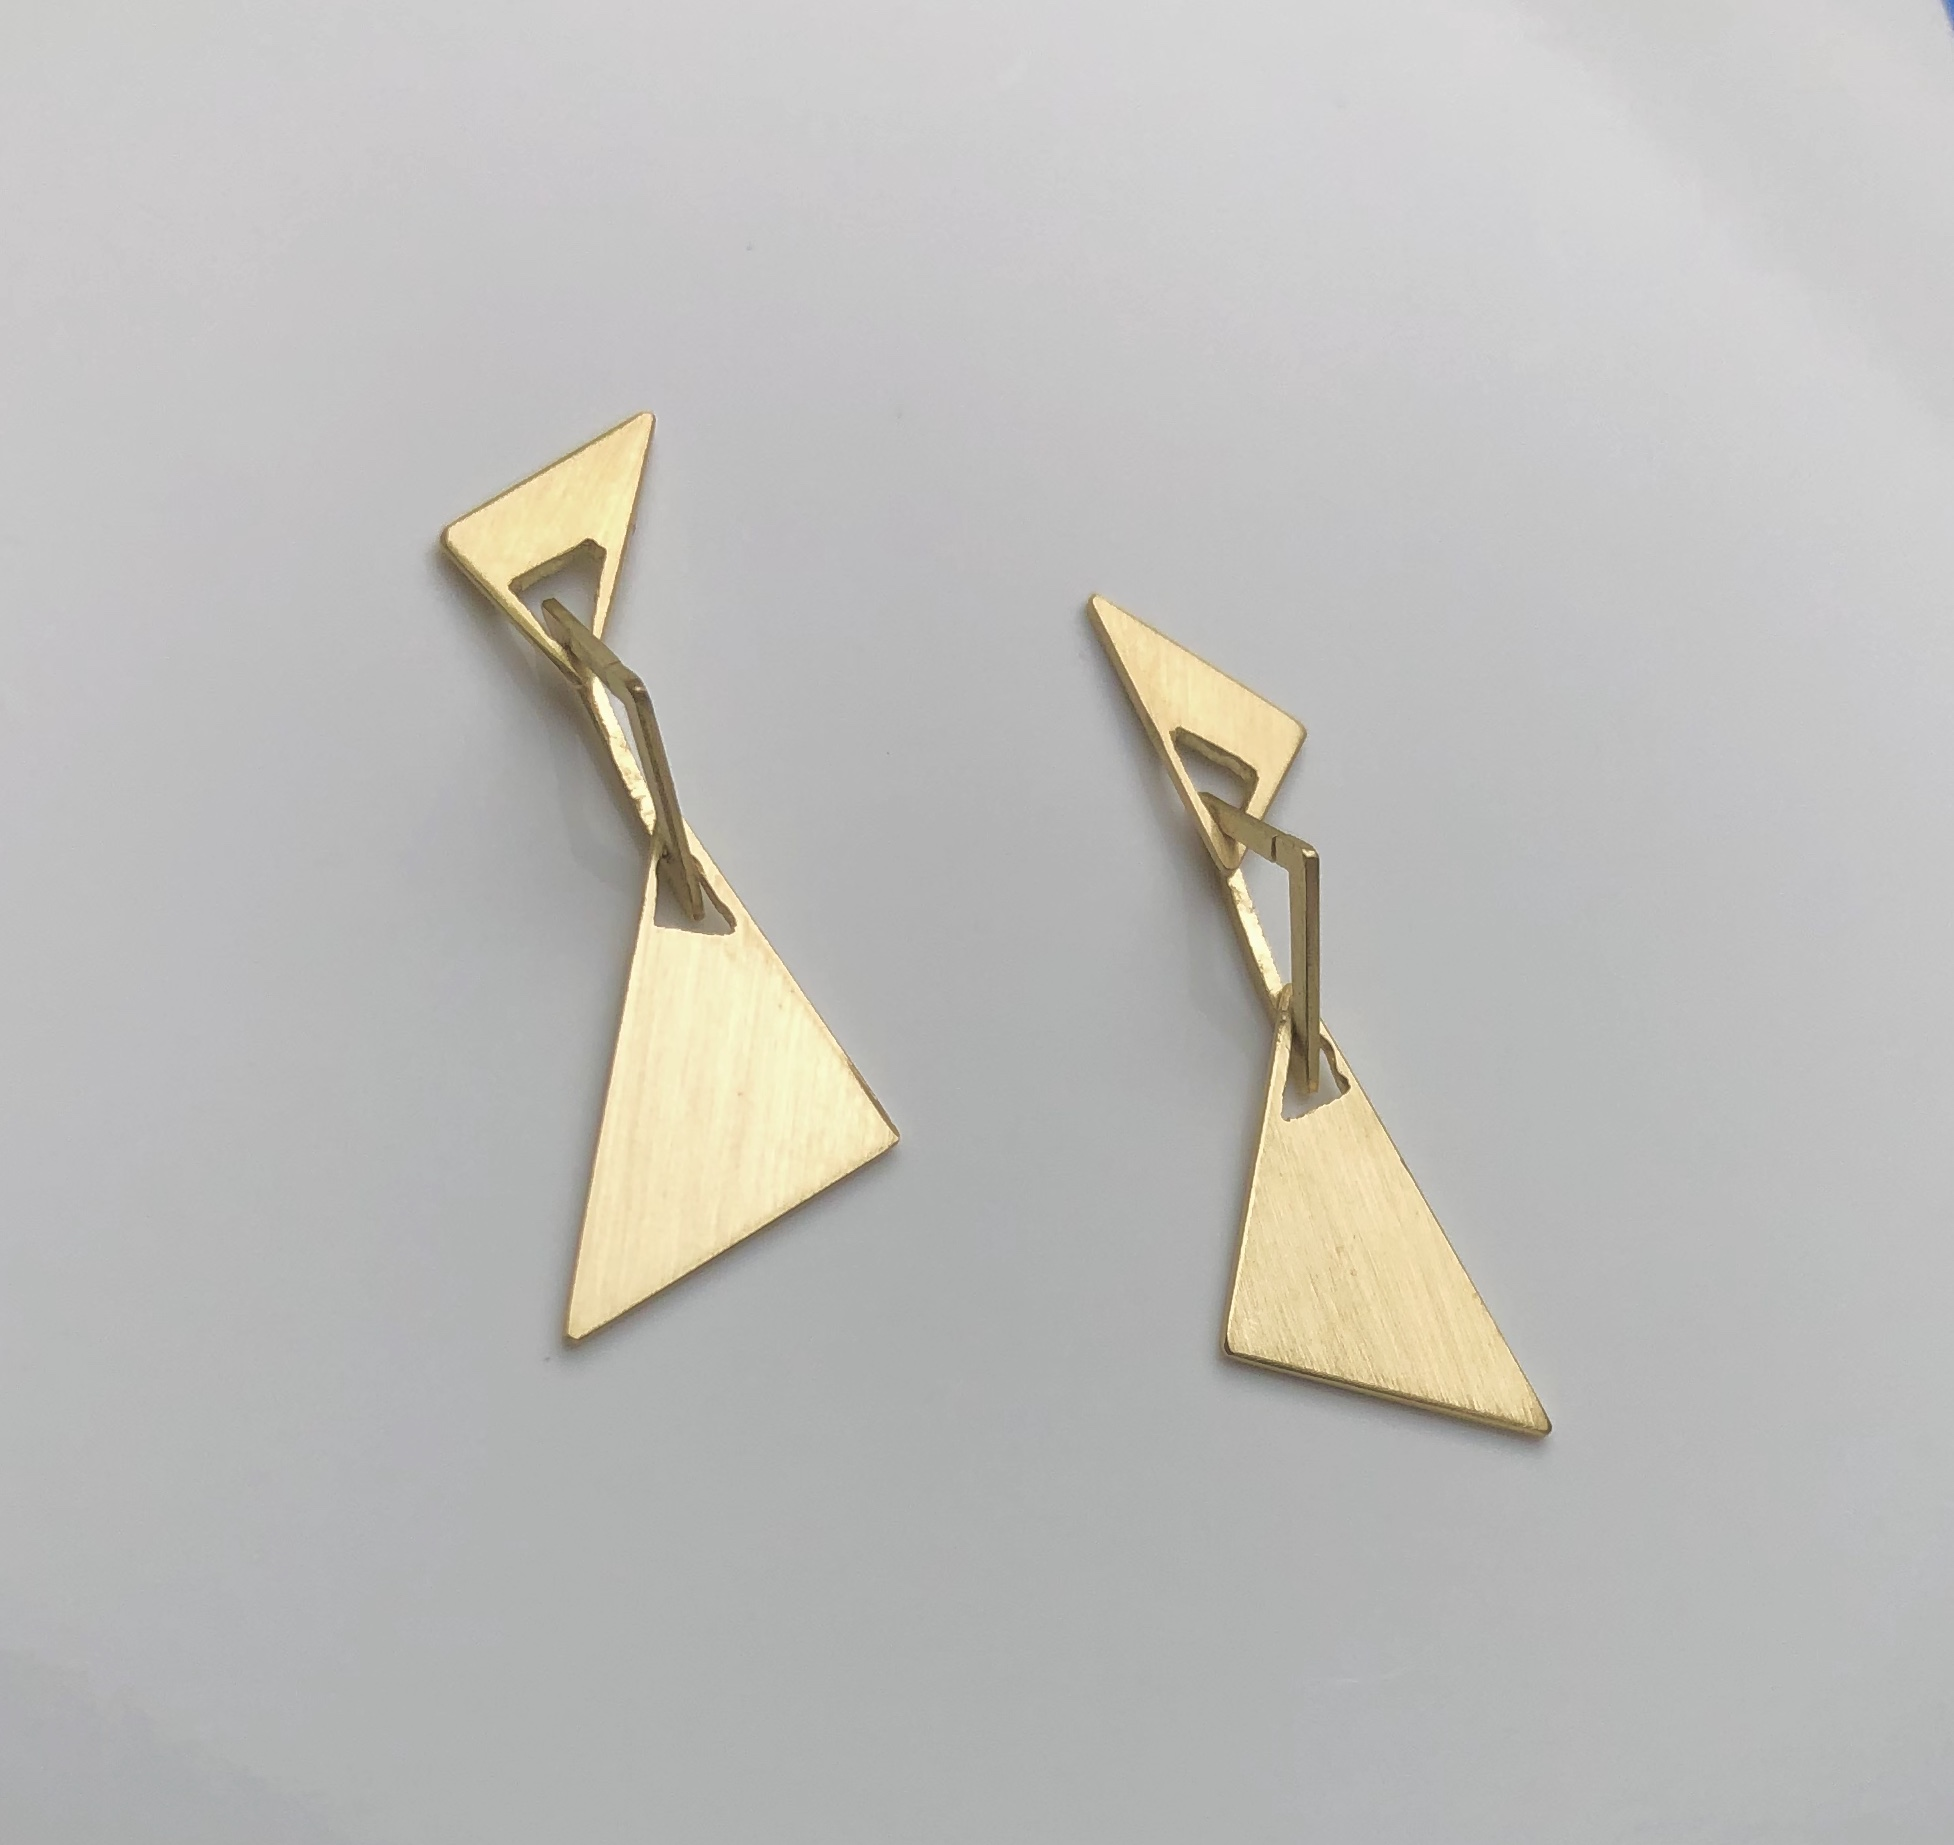 golden earrings 18K : 600 €